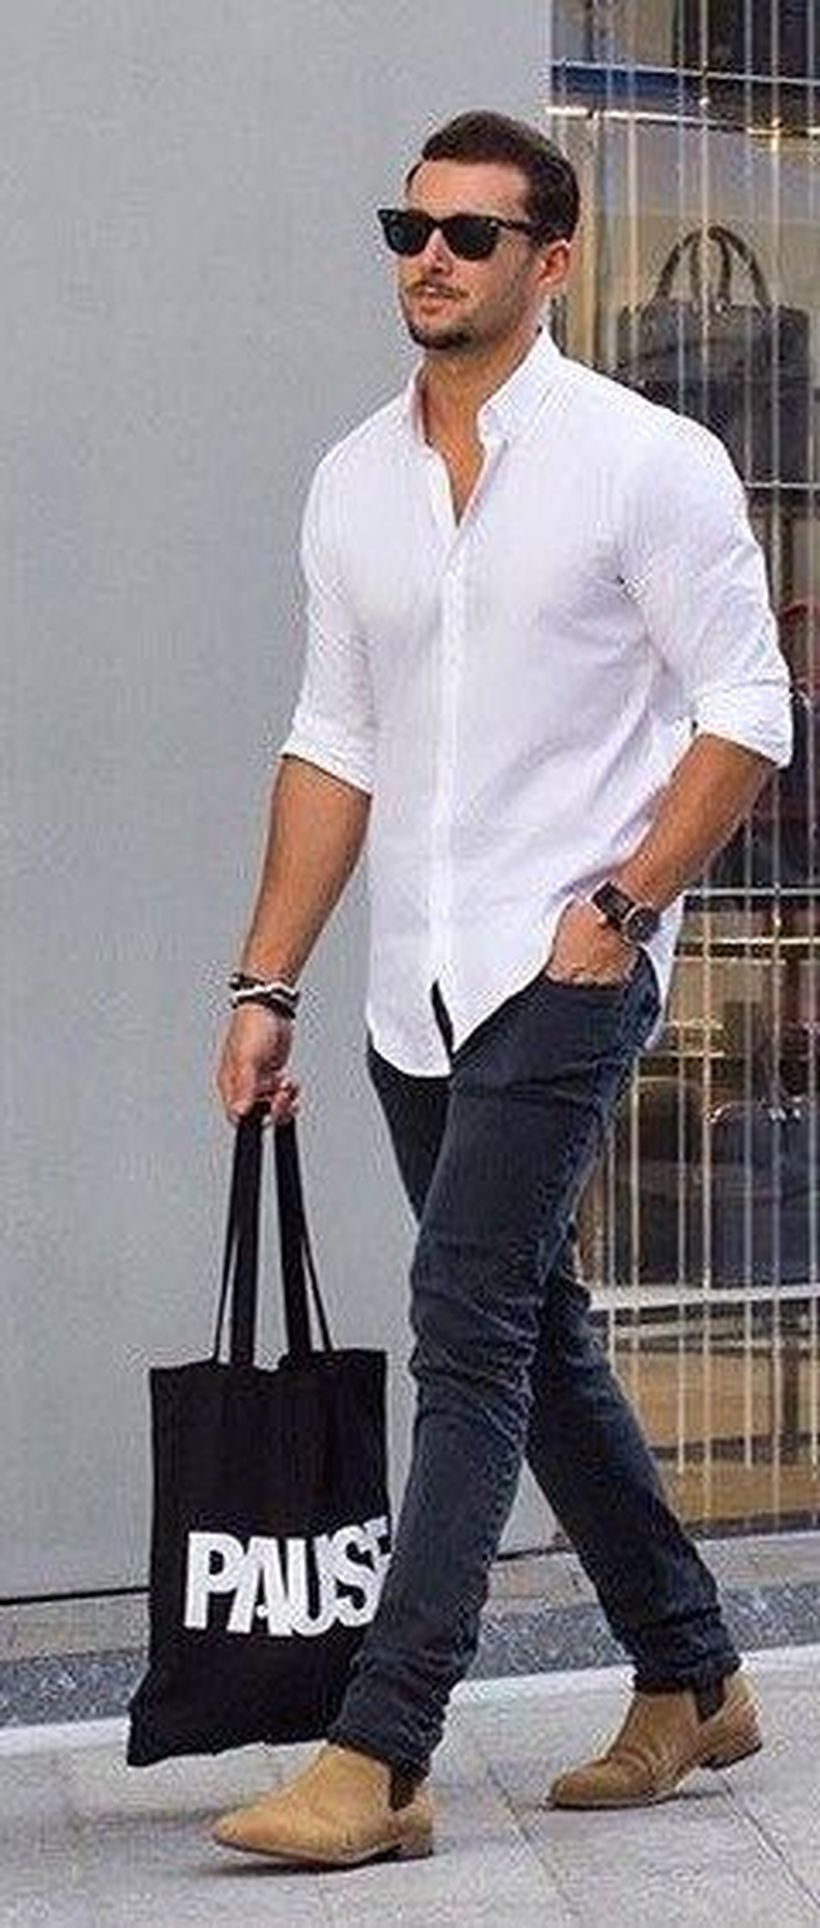 Stylish men's jeans outfits ideas in 2017 51